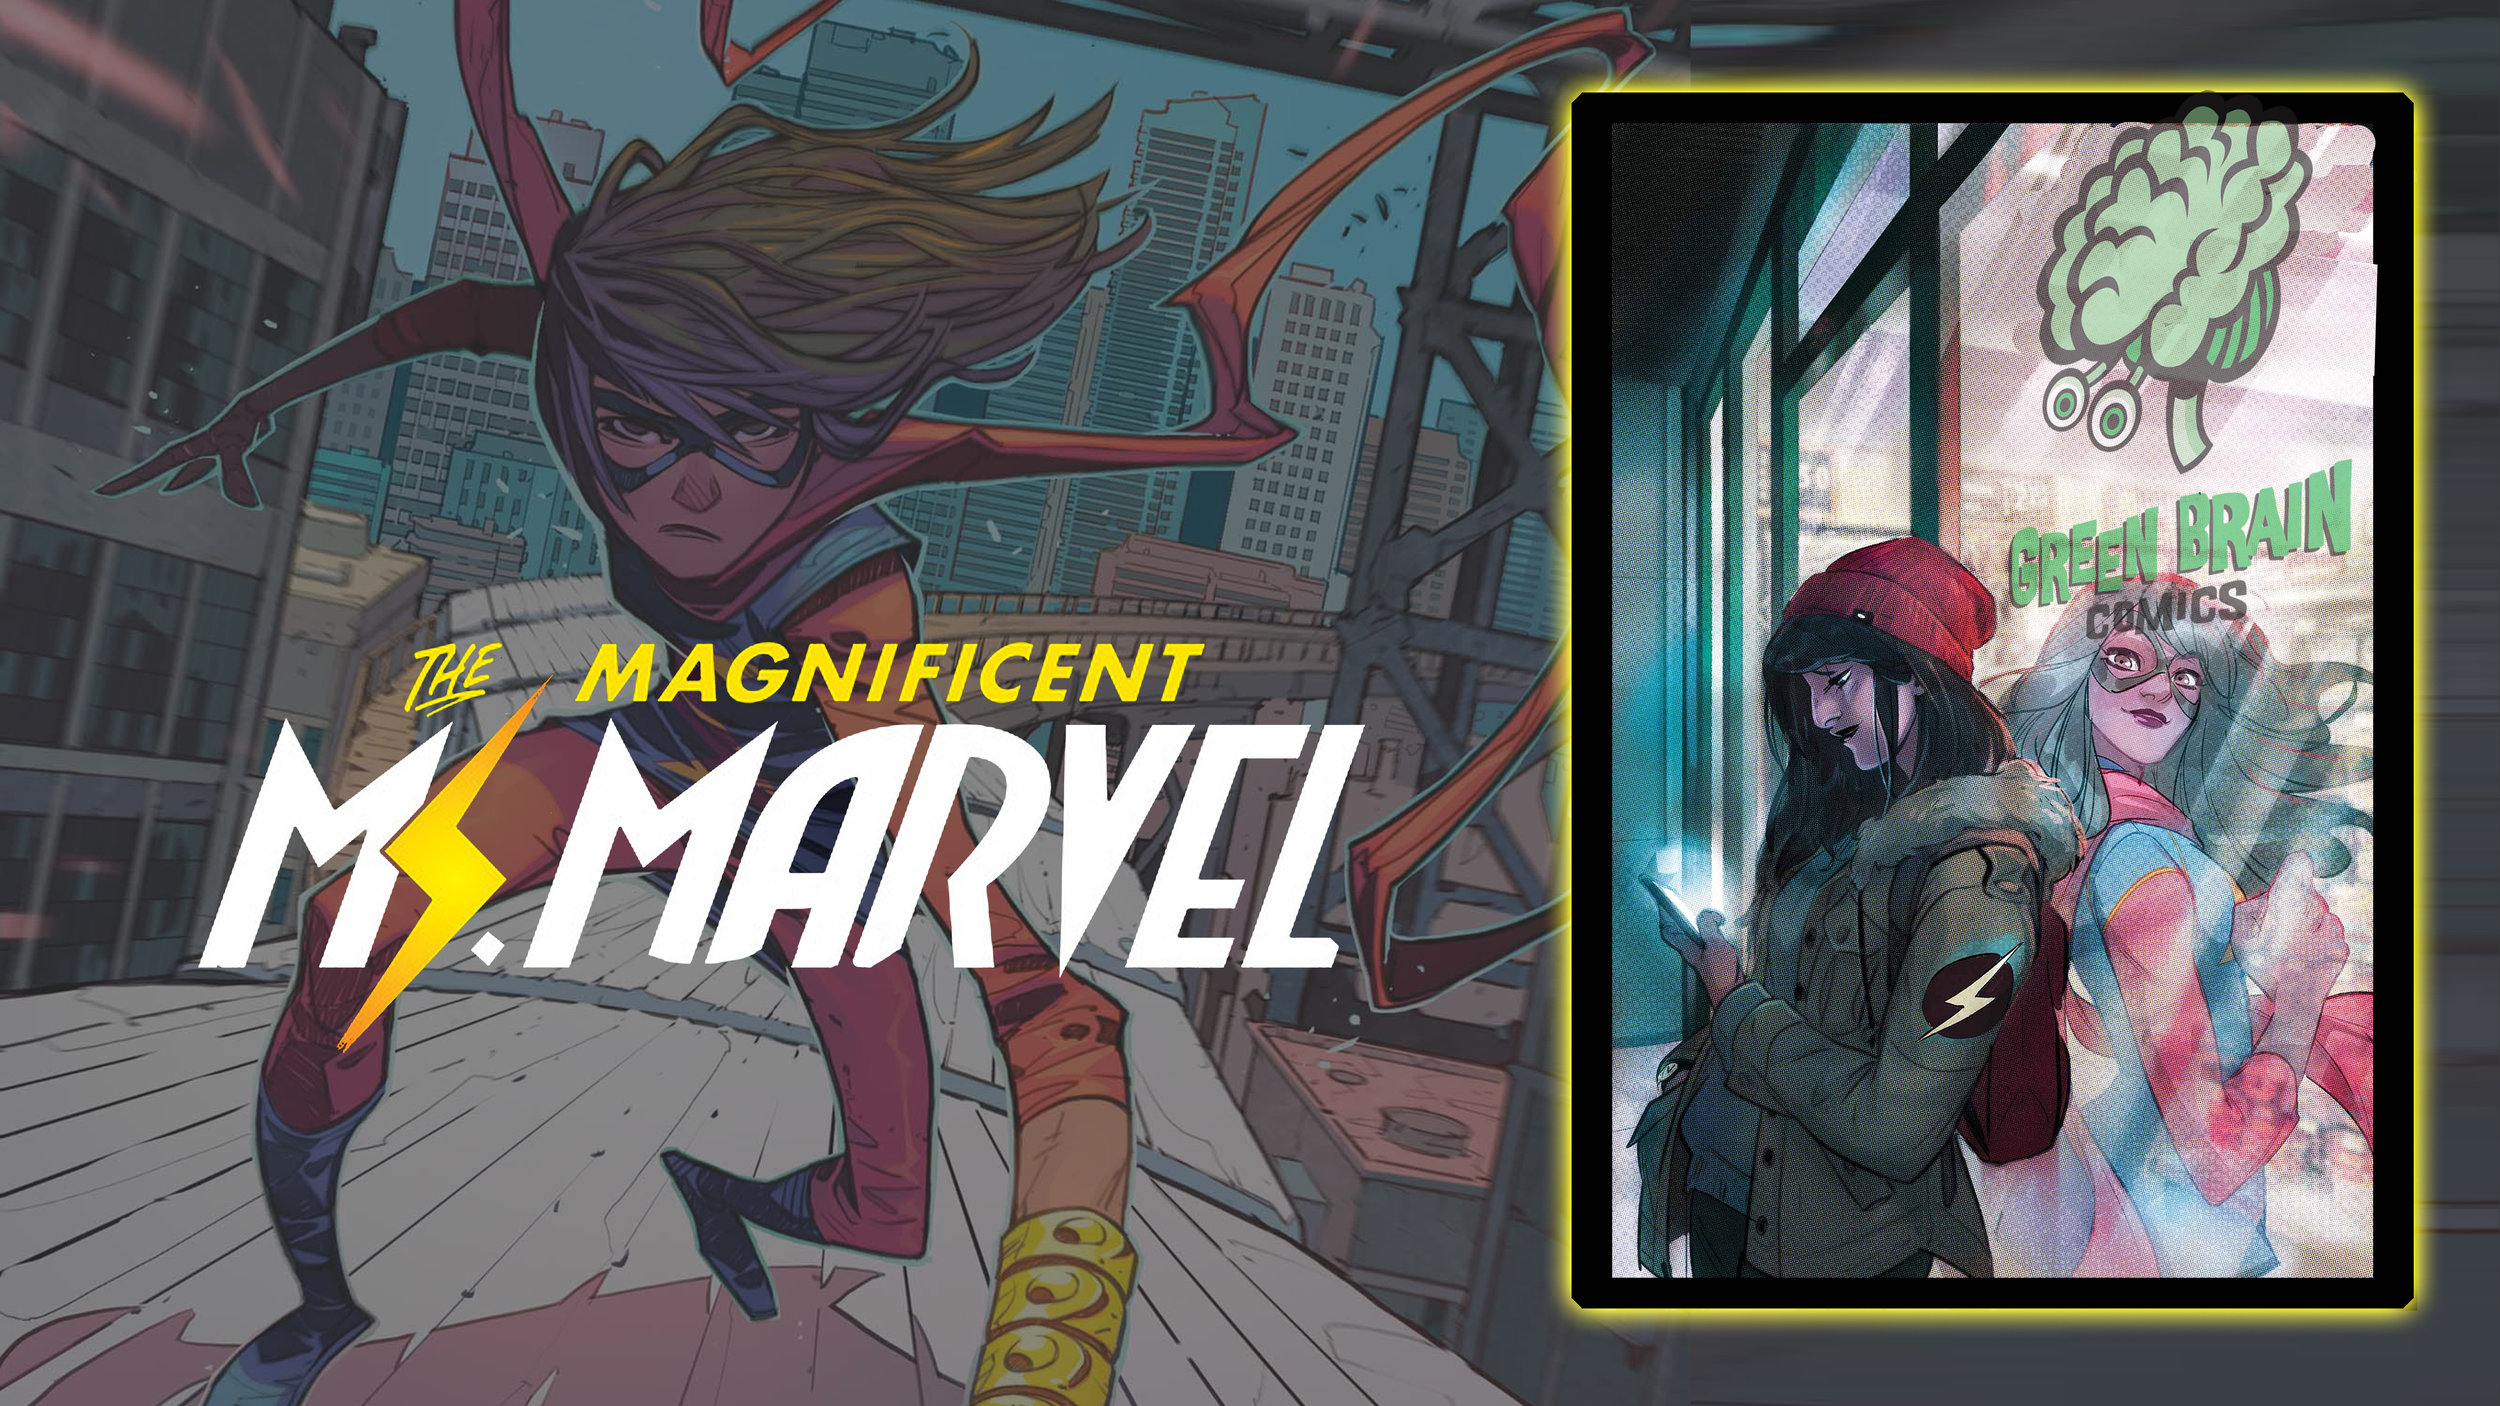 SALADIN AHMED MS MARVEL FB EVENT BANNER'.jpg